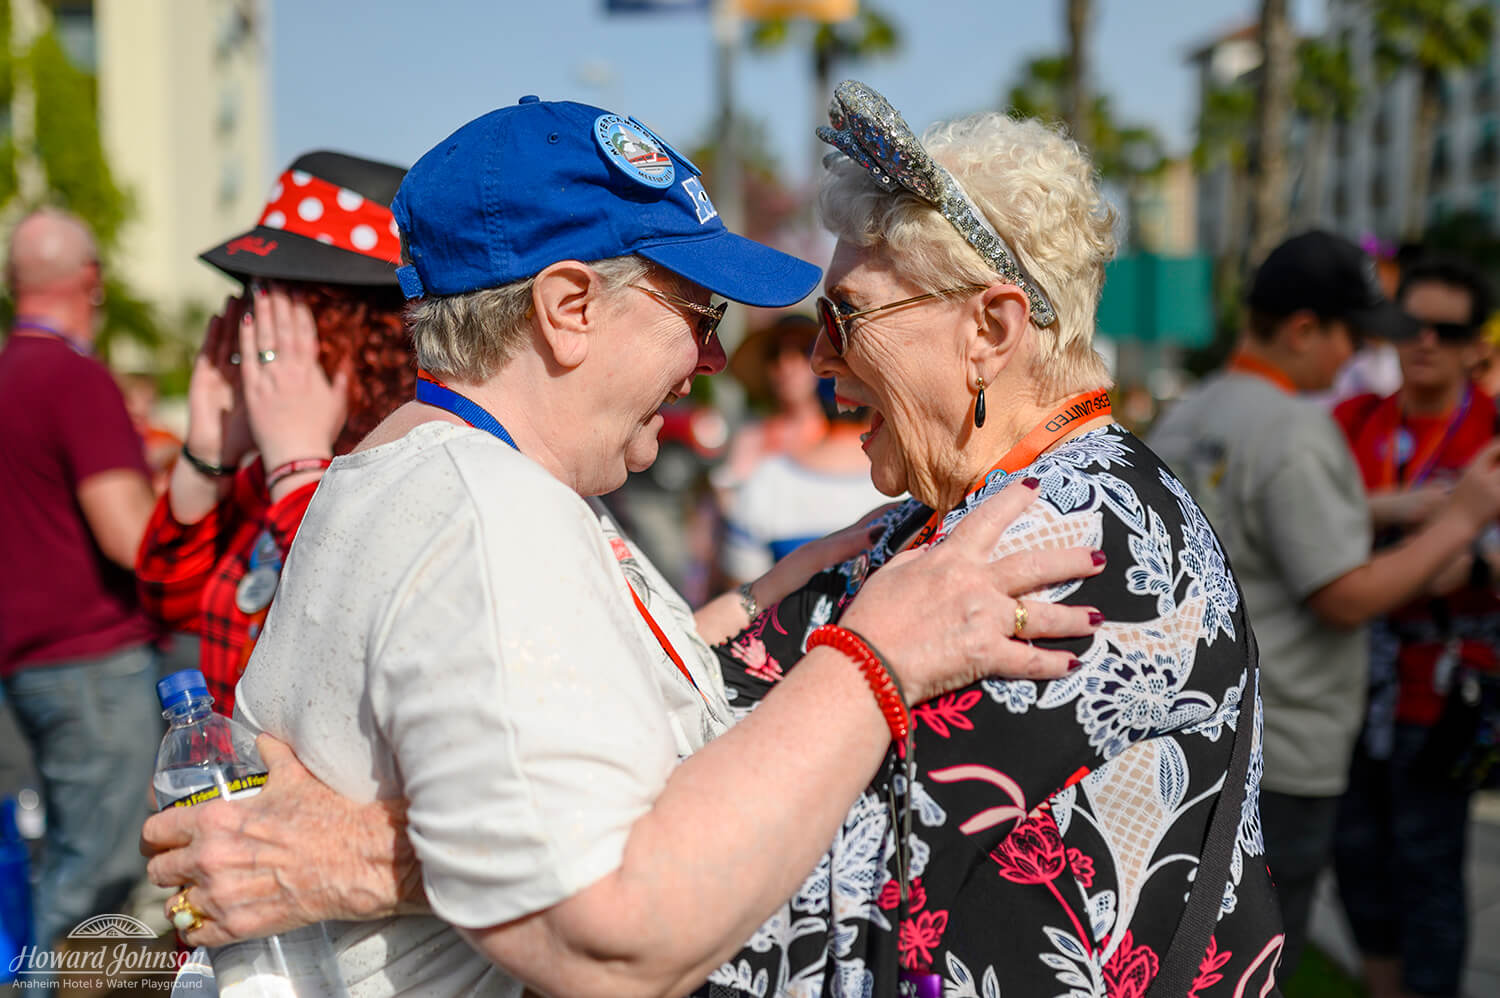 Two women wearing disney hats embrace in a hug and smile